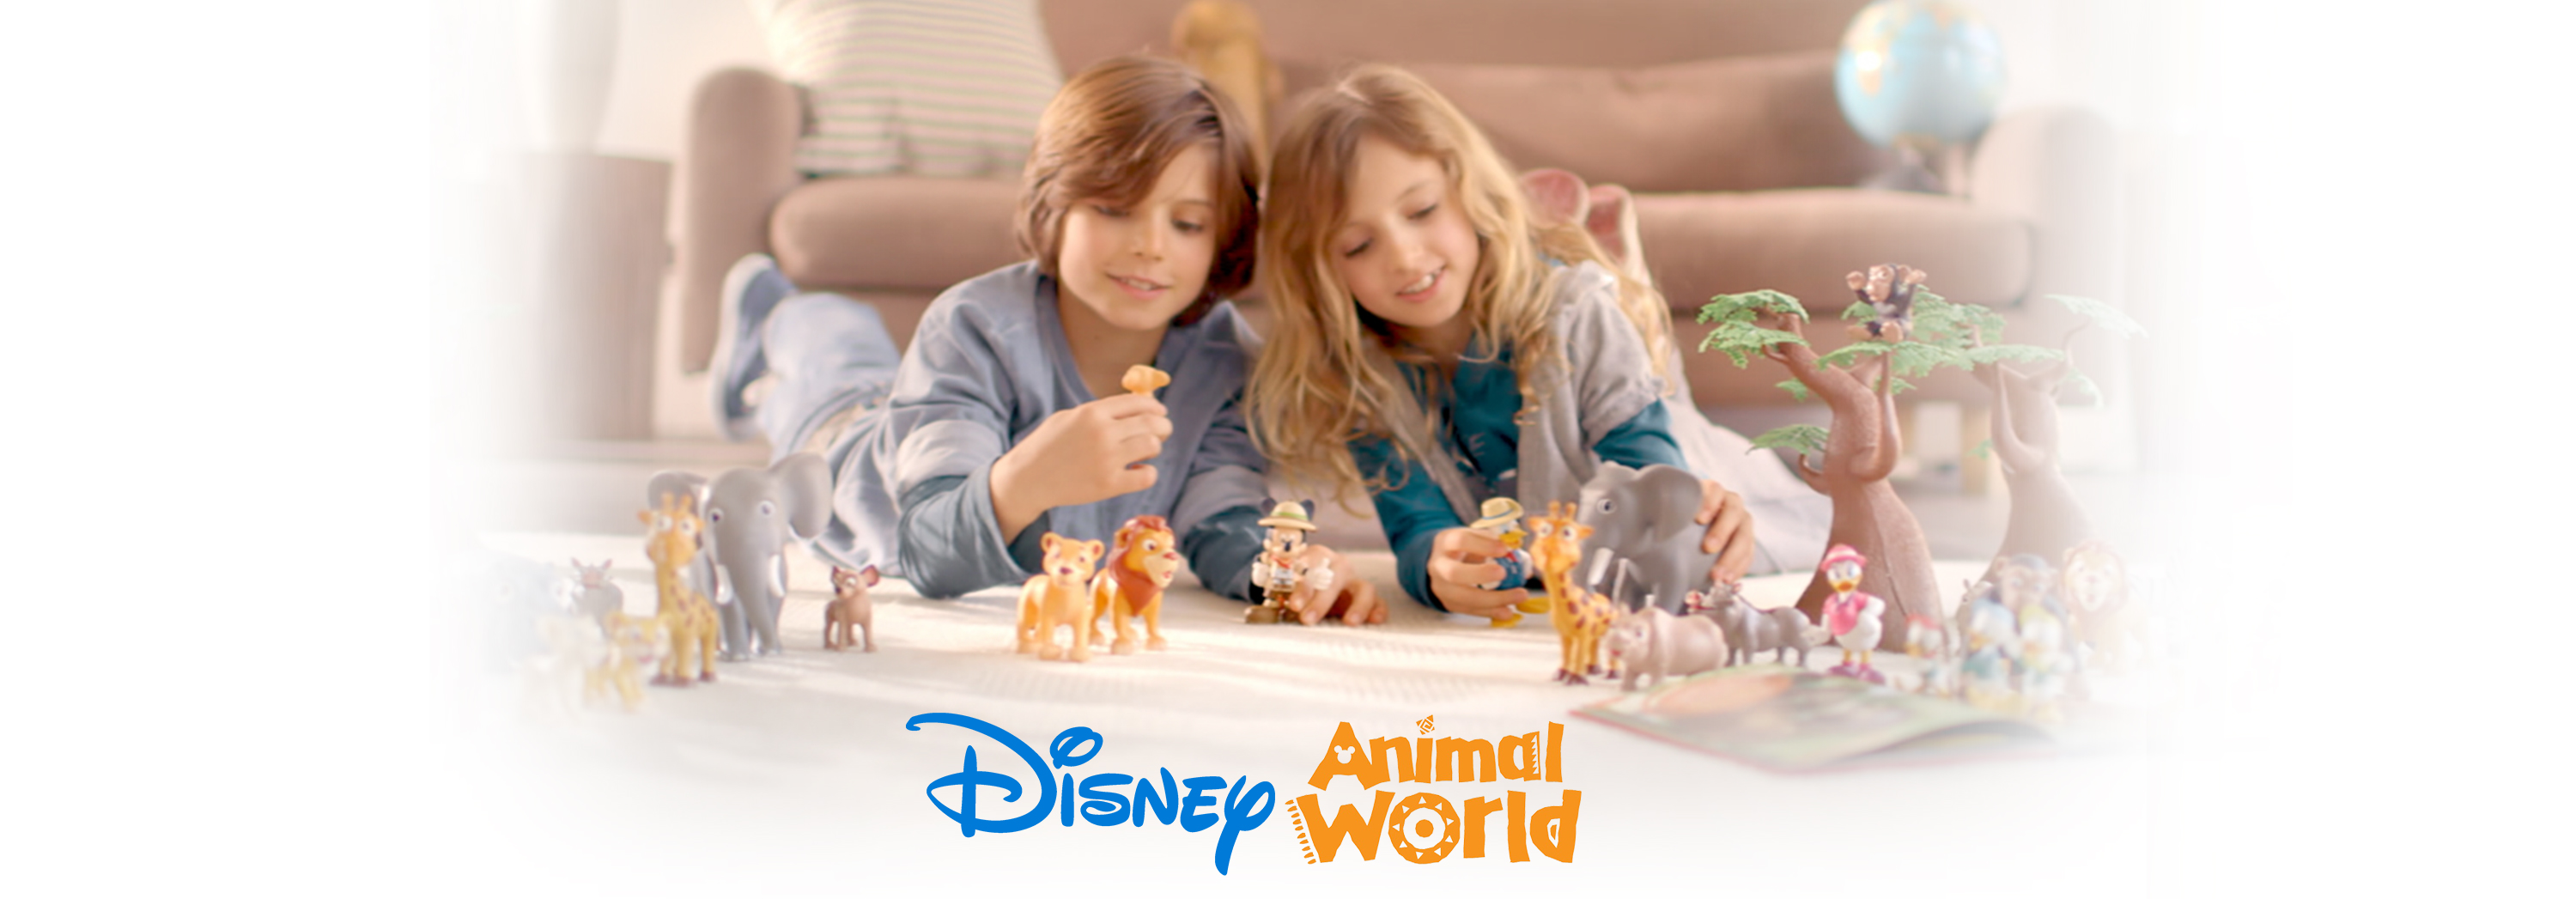 Introducing Disney Animal